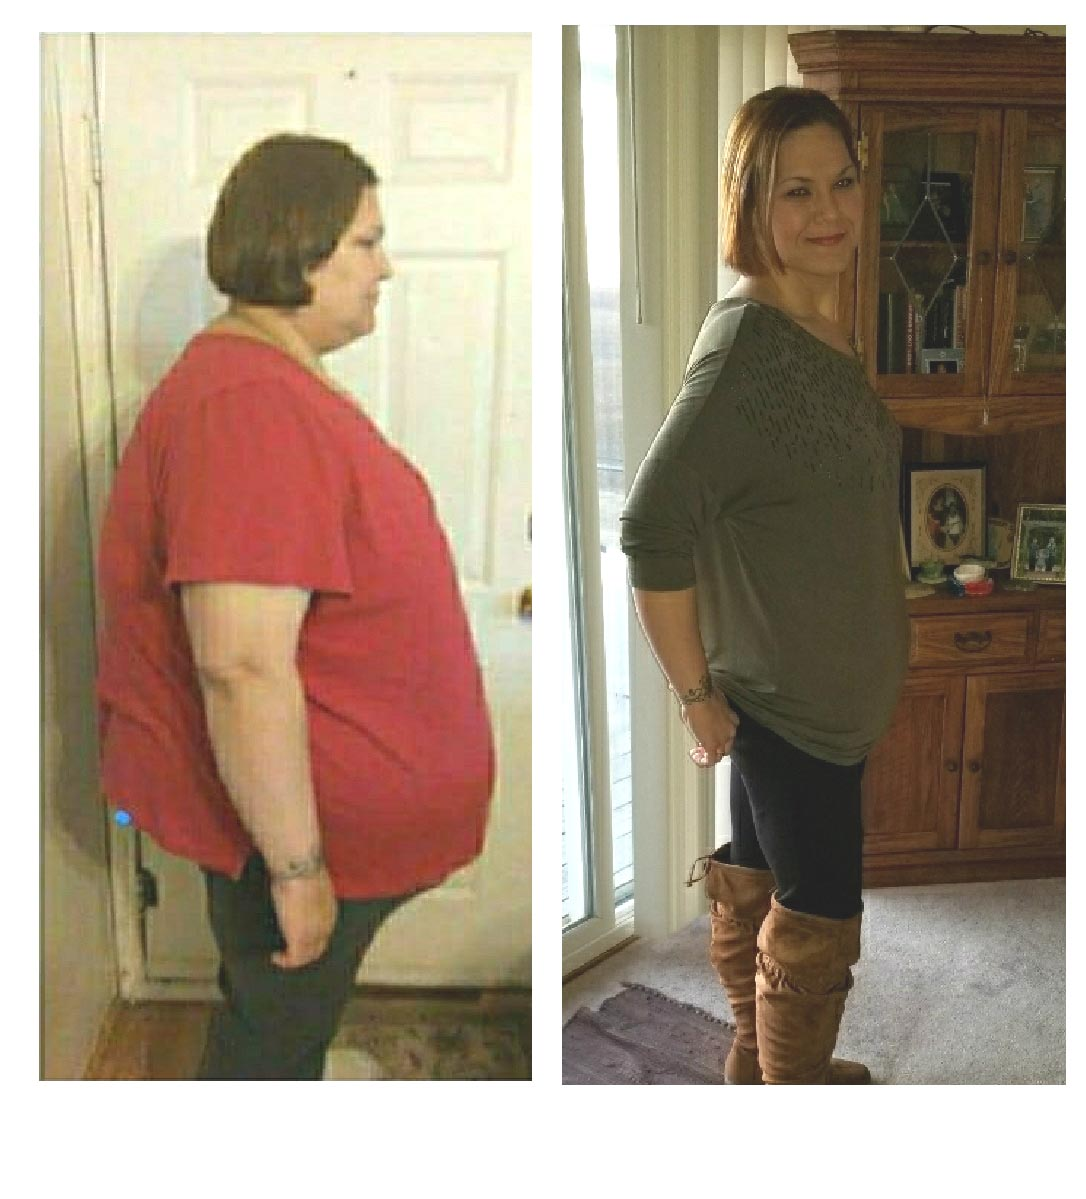 rachel-lisner-before-and-after1-metabolic-health-and-surgical-weight-loss-center